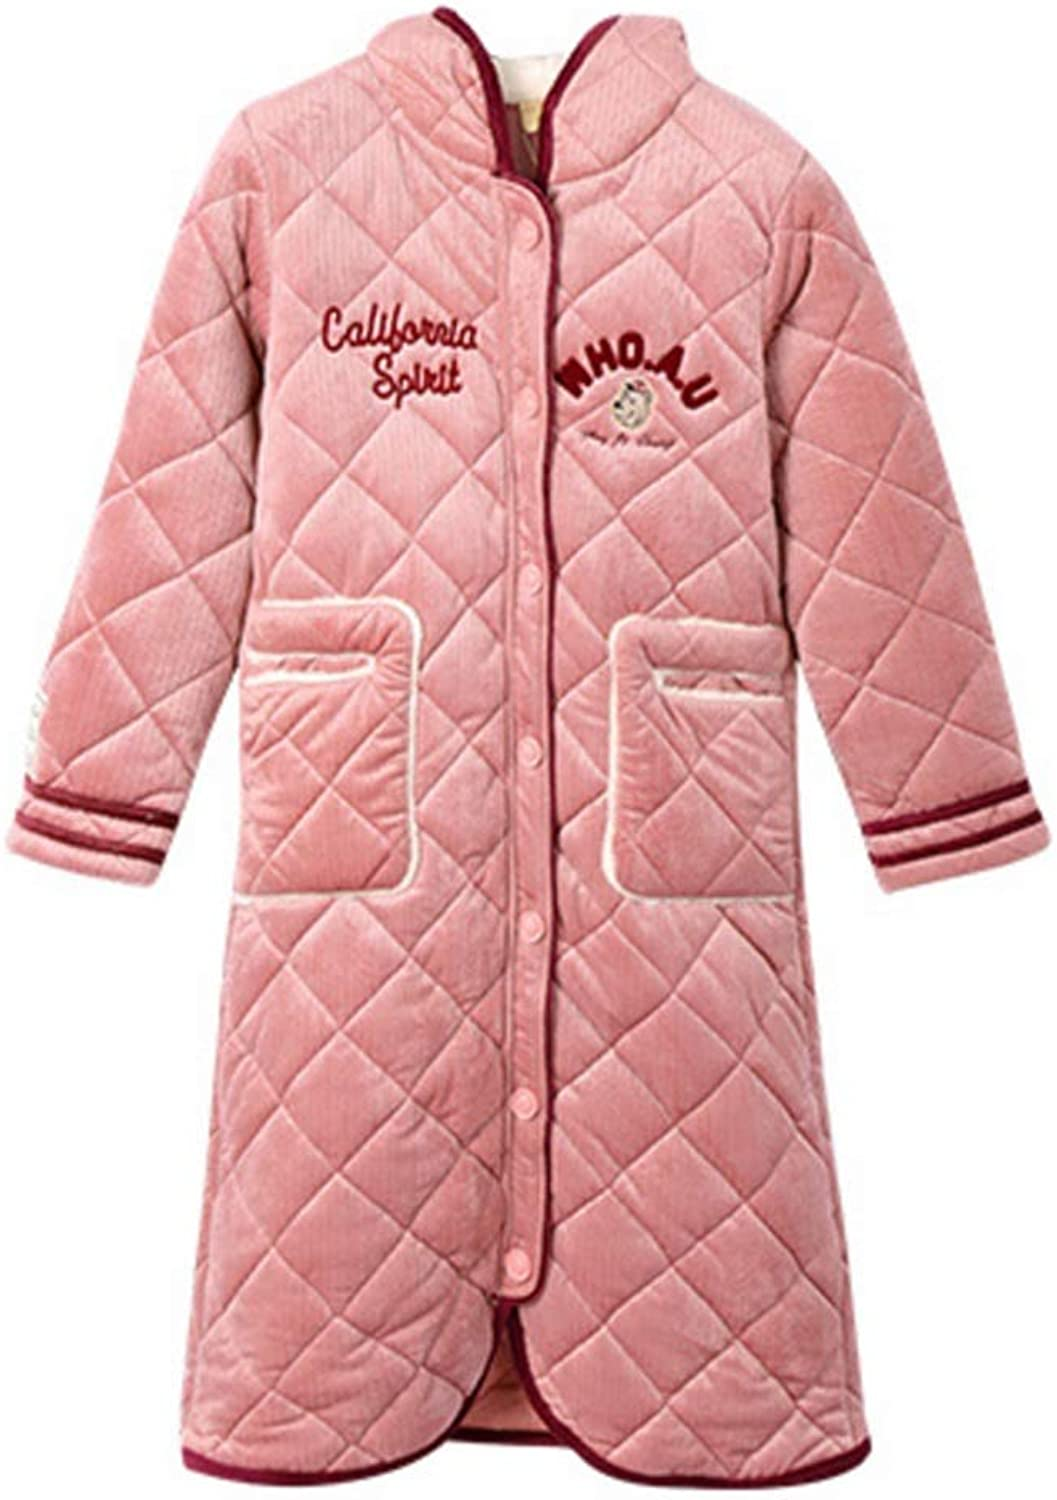 NAN Liang 100% Cotton Bathrobes Thick Long Sleepwear Buttonup Cardigan Hooded Nightwear Sweet Home Service Robes, 5 Size (Size   M)